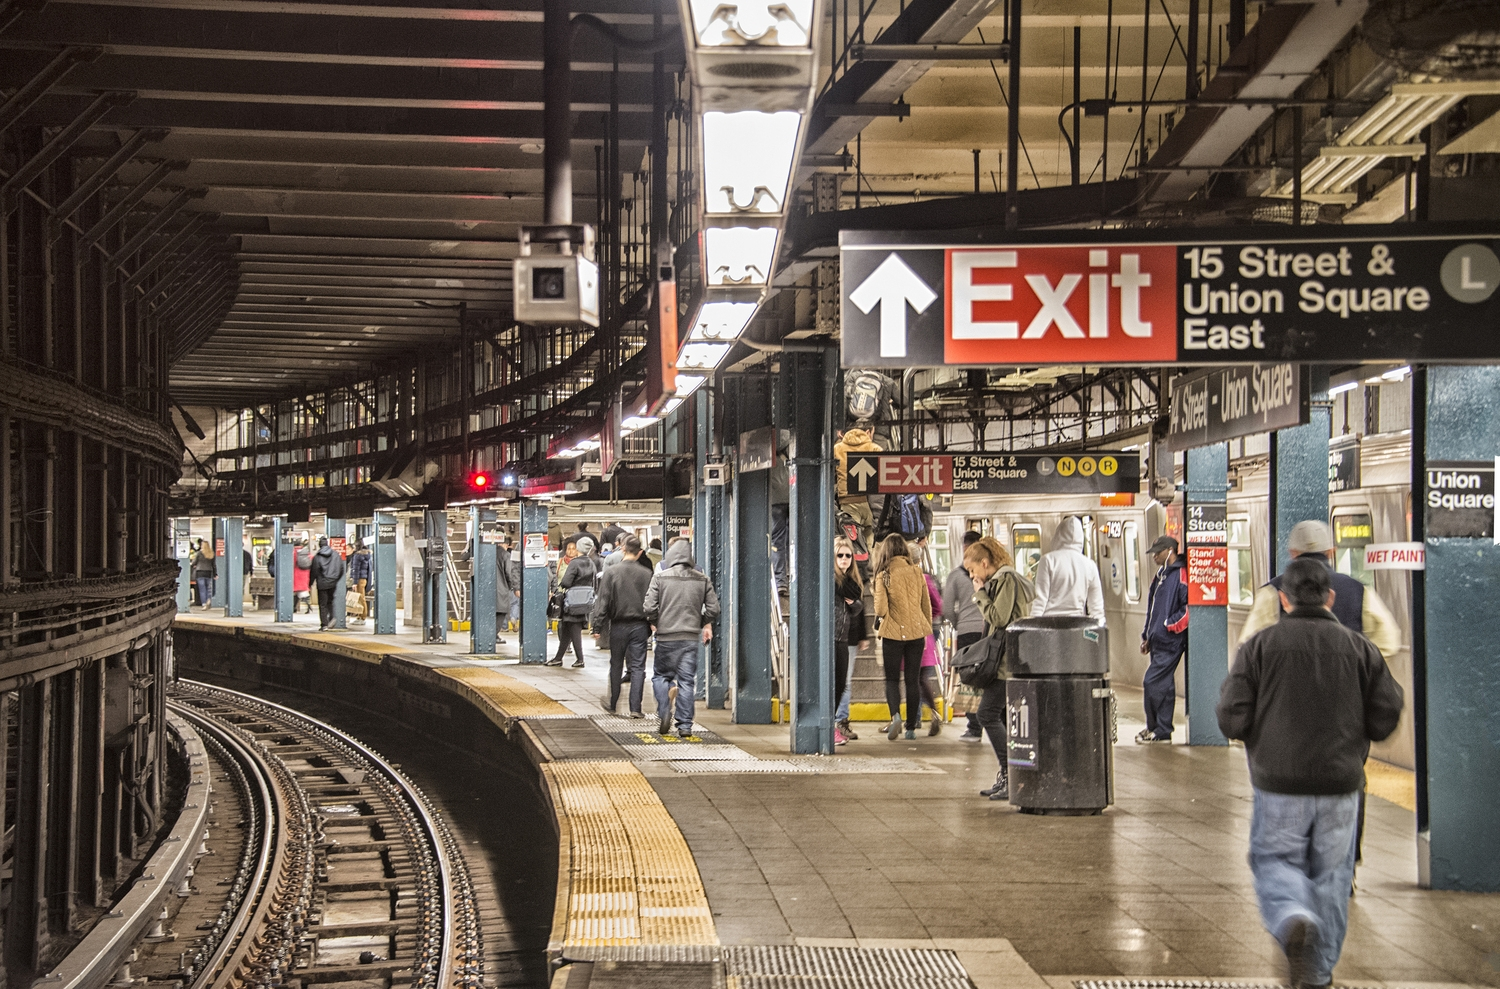 14th Street Union Square Subway | The Downtown 4/5 Track, with a City Hall bound 6 train on the extreme right.